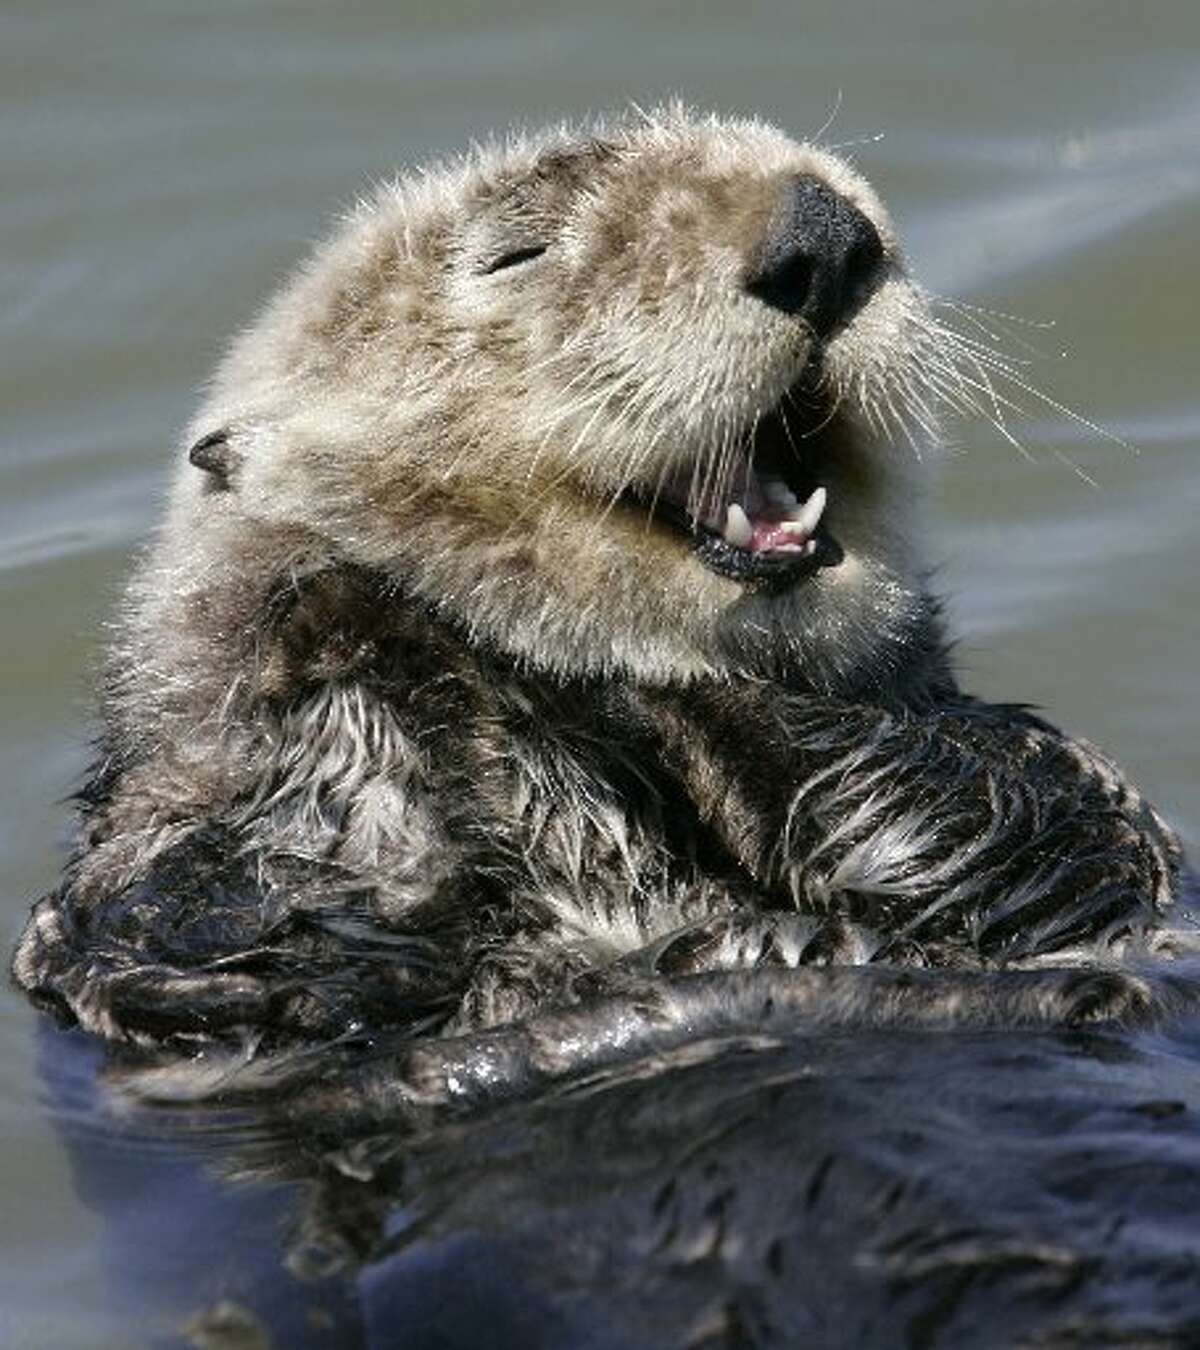 California sea otter, this one off Moss Landing near Monterey, is a threatened species. Photo by Paul Sakuma/AP